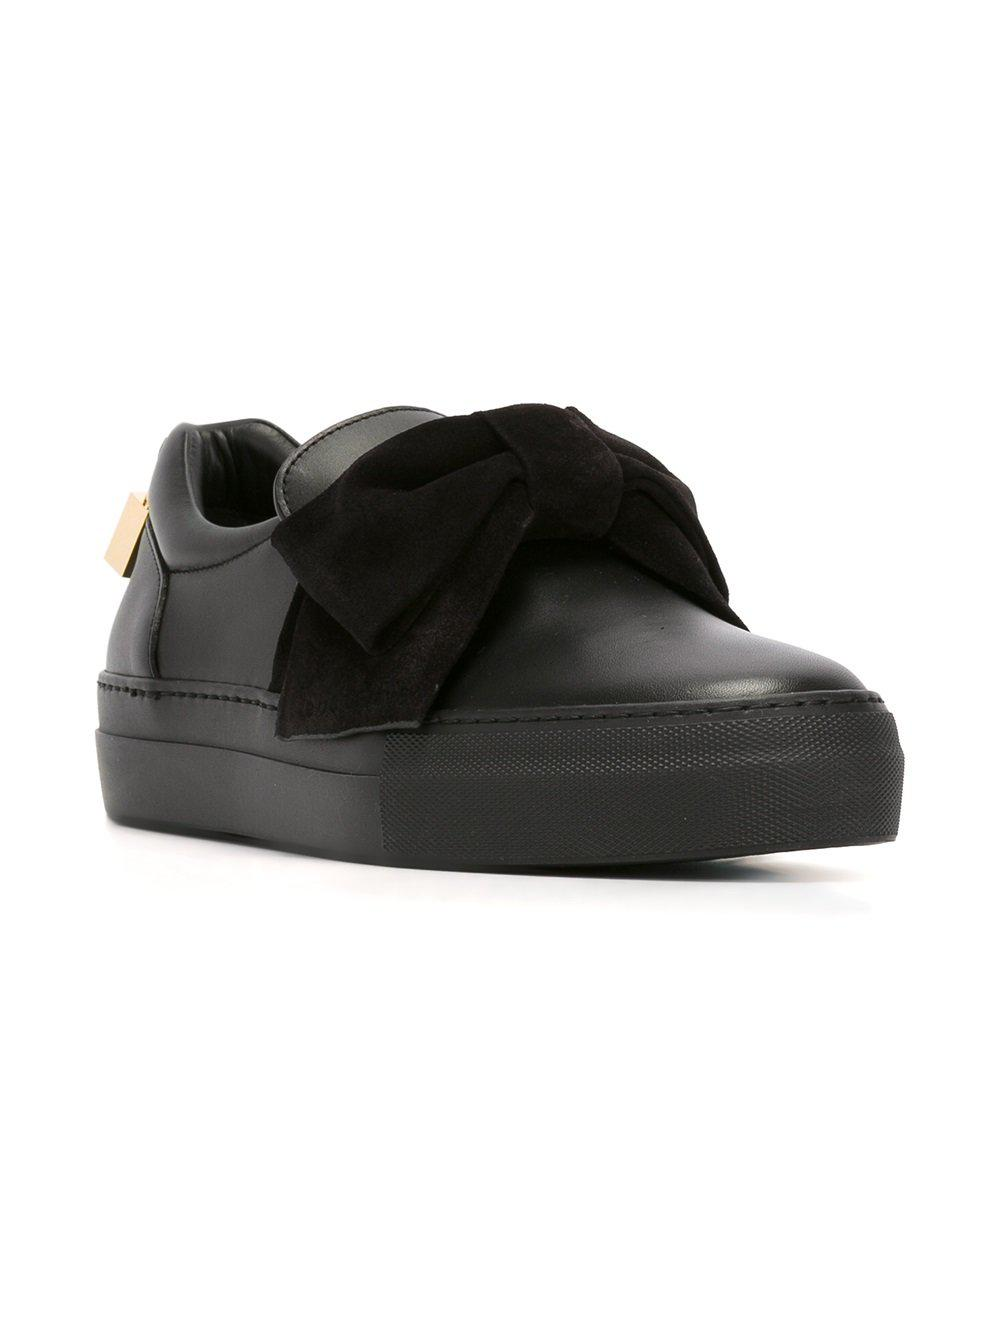 Buscemi Leather Bow Detail Sneakers in Black